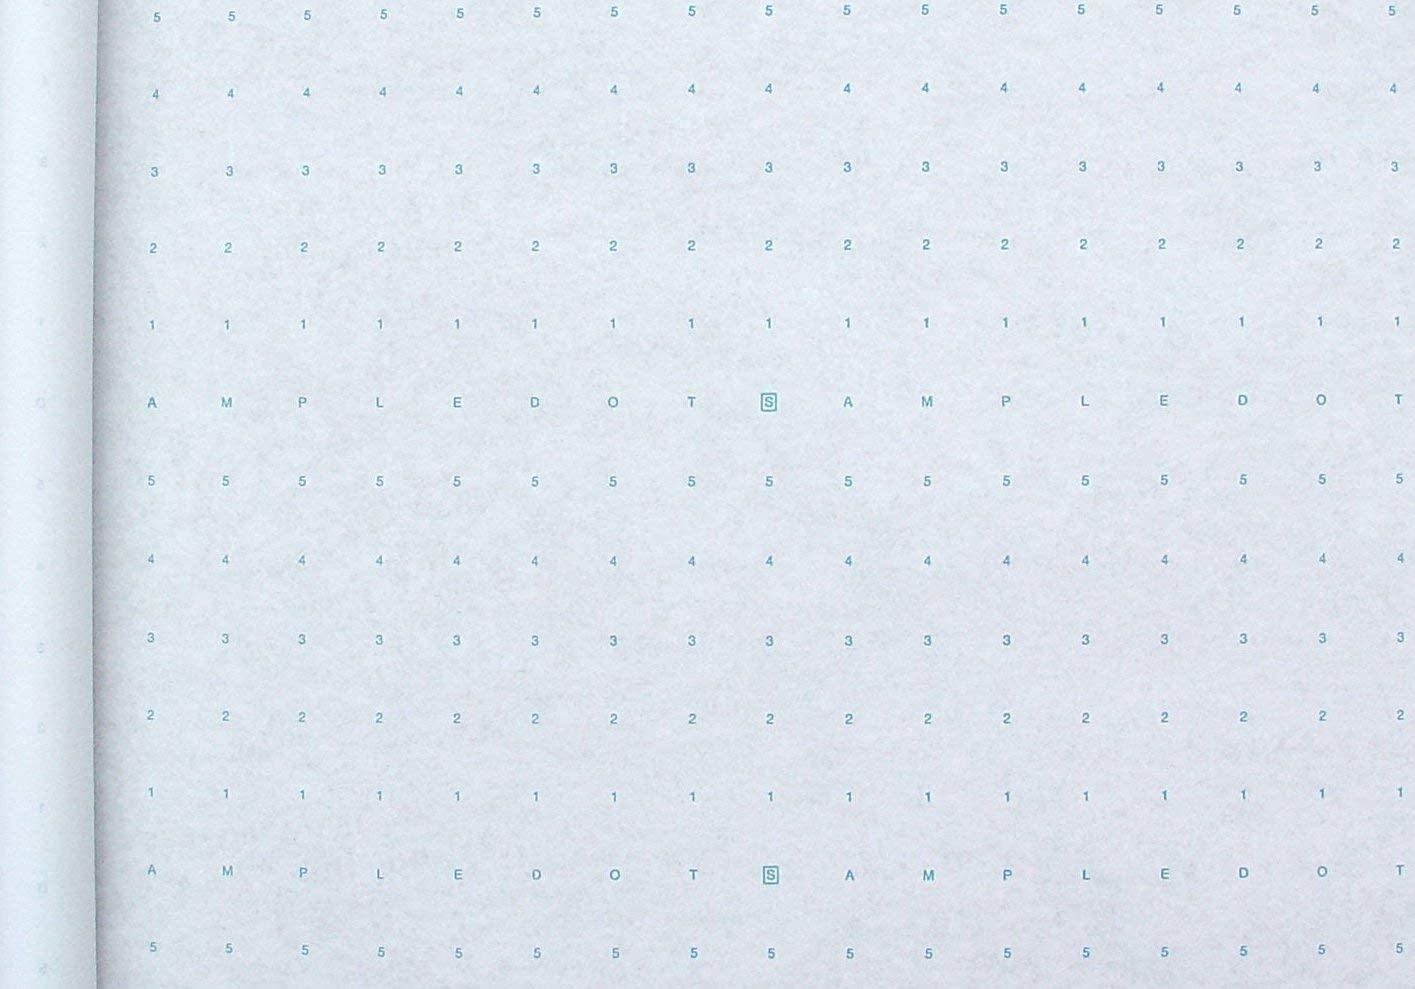 Roll of Alpha Numeric Dotted Marking Paper/Pattern Paper (48 inches x 06 Yards) Optimum Performance - Made in The USA